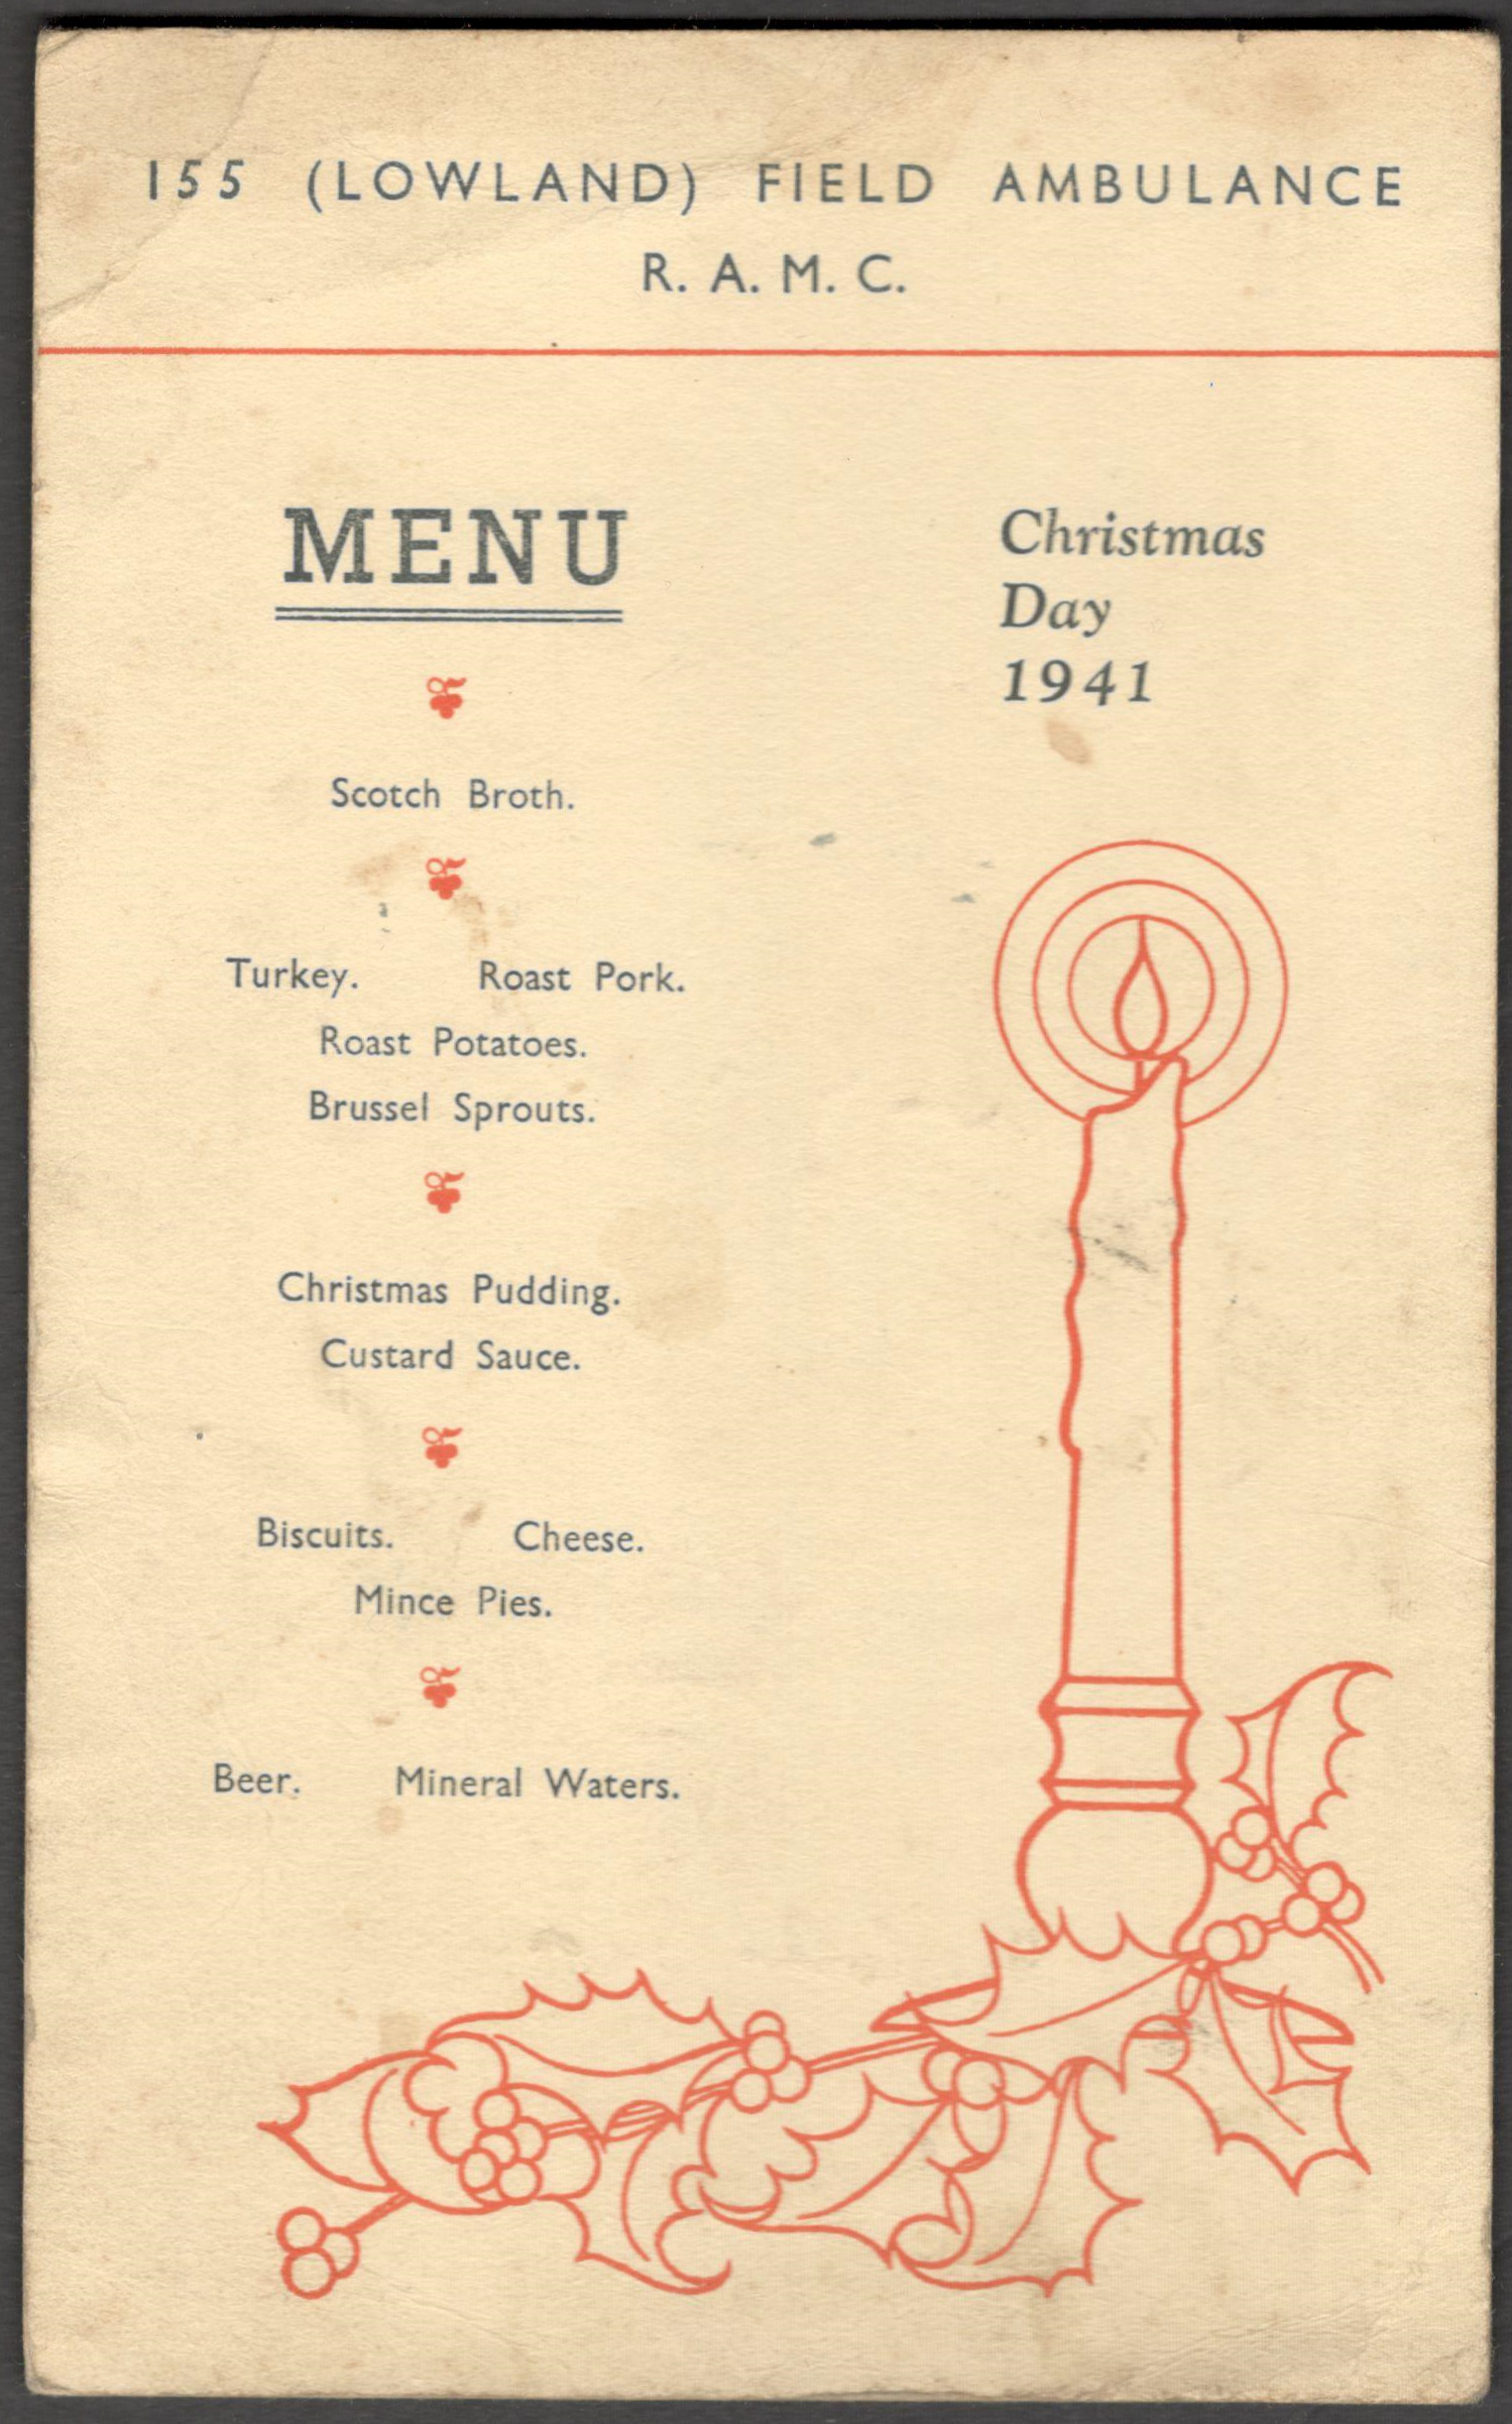 Lot 12 - 155 LOWLAND FIELD AMBULANCE R.A.M.C. CHRISTMAS DAY 1941 MENU SIGNED ON THE BACK